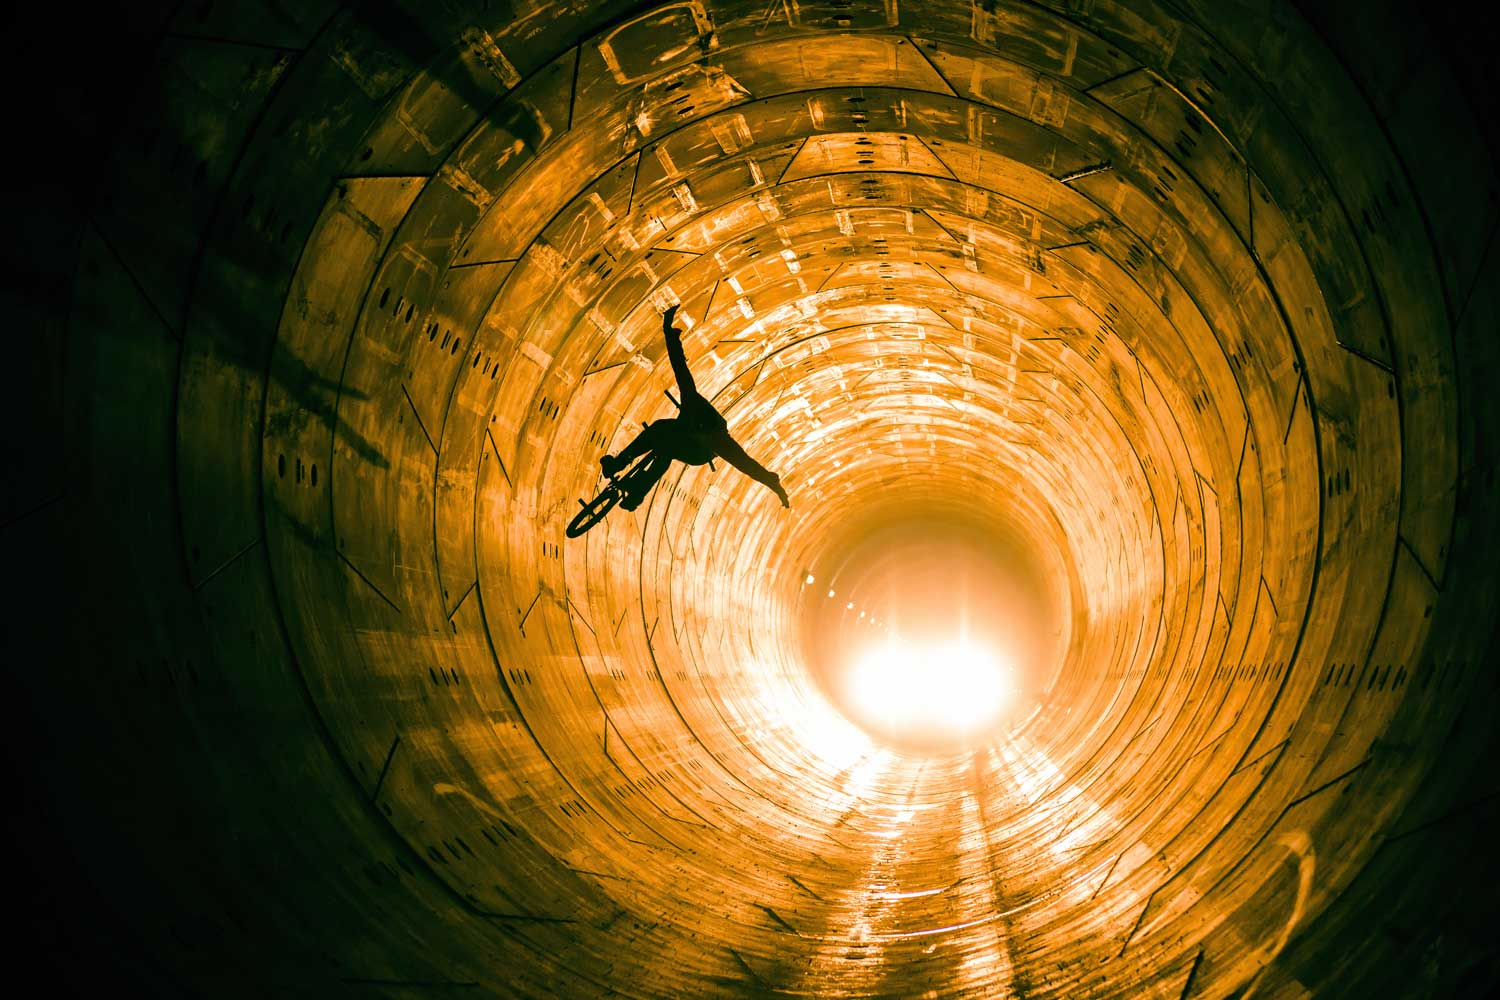 Dawid Godziek busts out a few tricks in the tunnel during the Red Bull Tube Check in Warsaw, Poland.